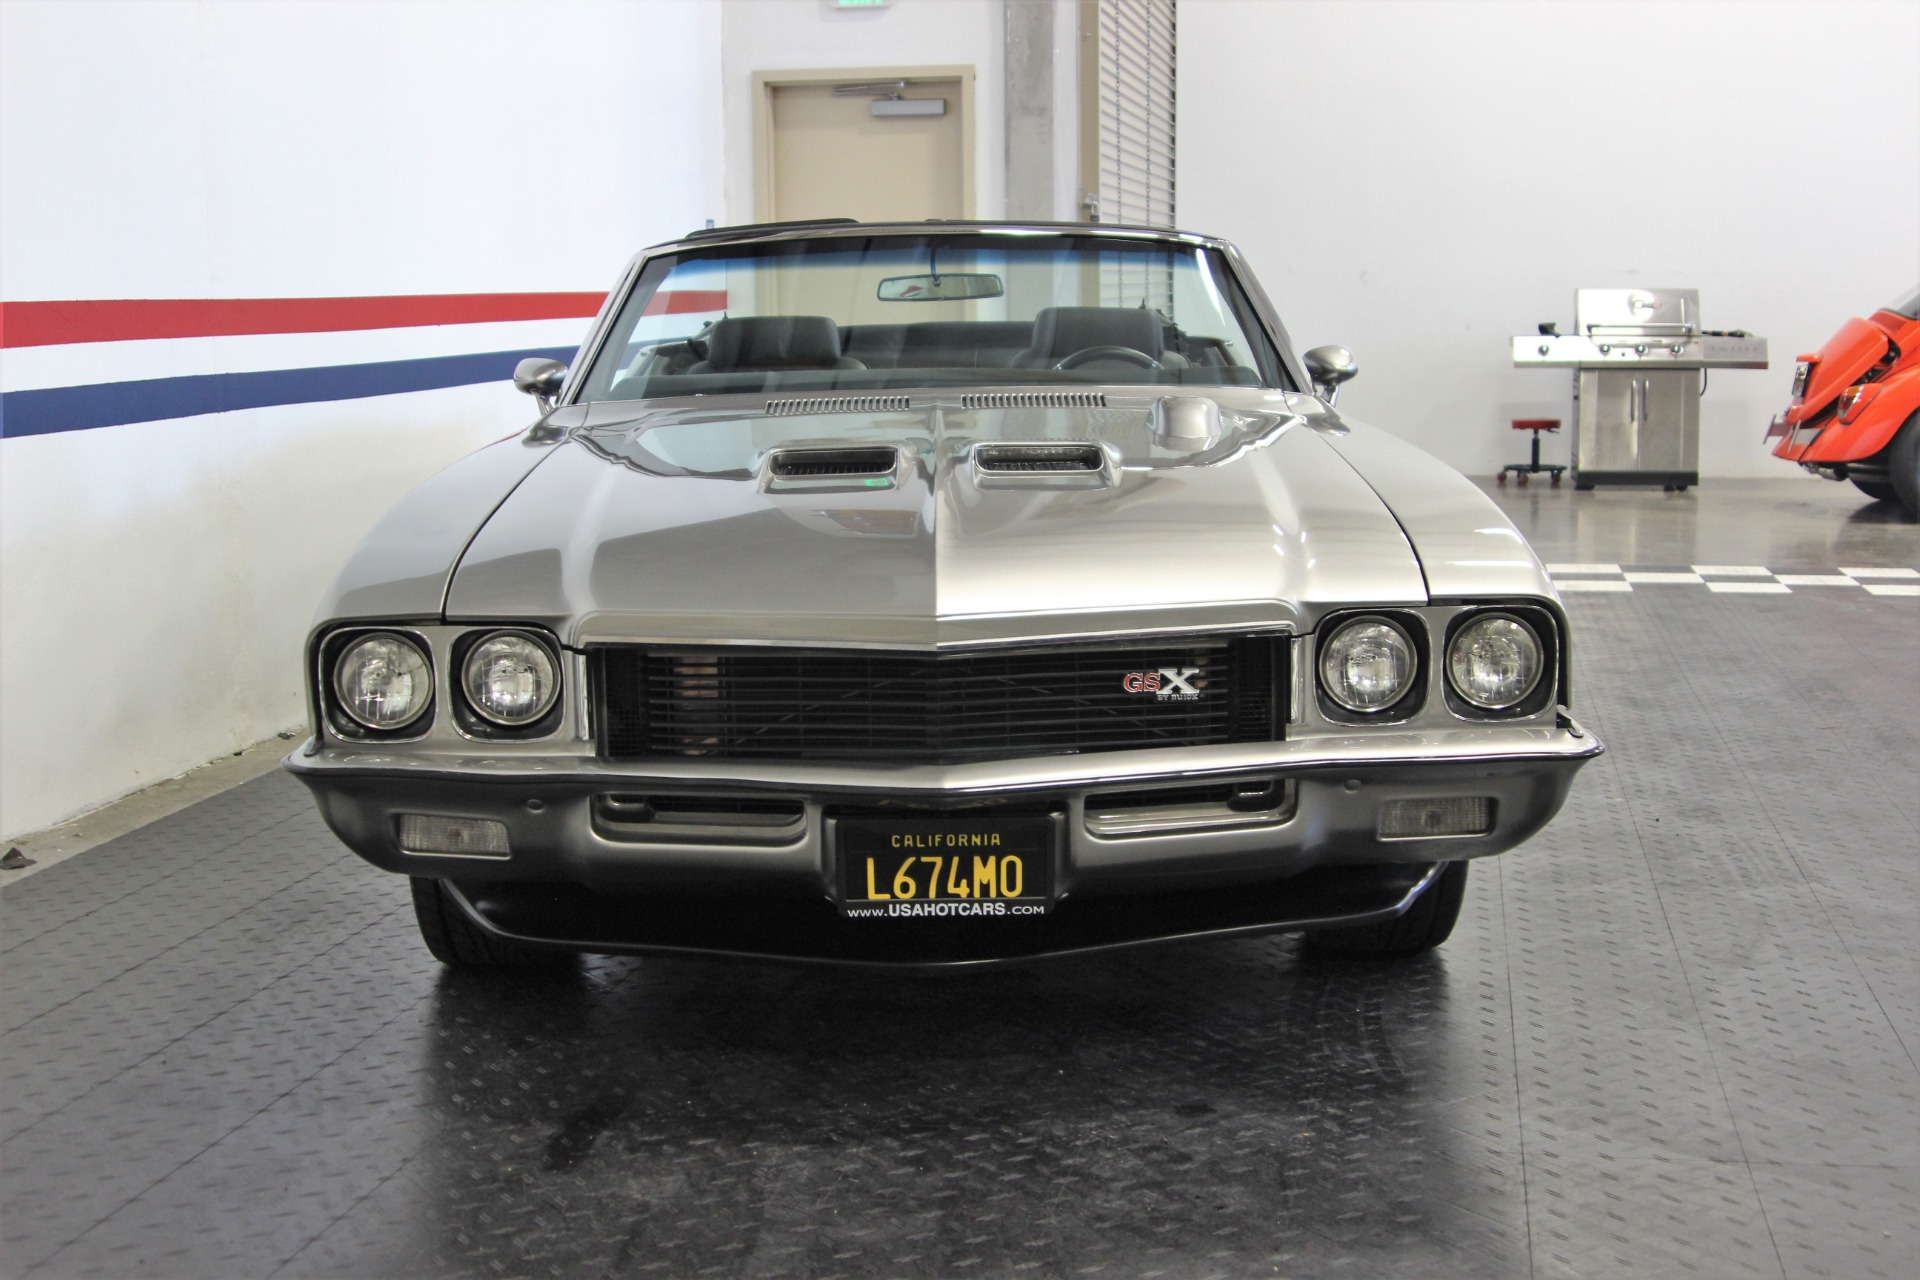 1972 Buick Skylark Gsx Stage 1 Stock 18057 For Sale Near San Ramon Hood Tach Wiring Diagram Used